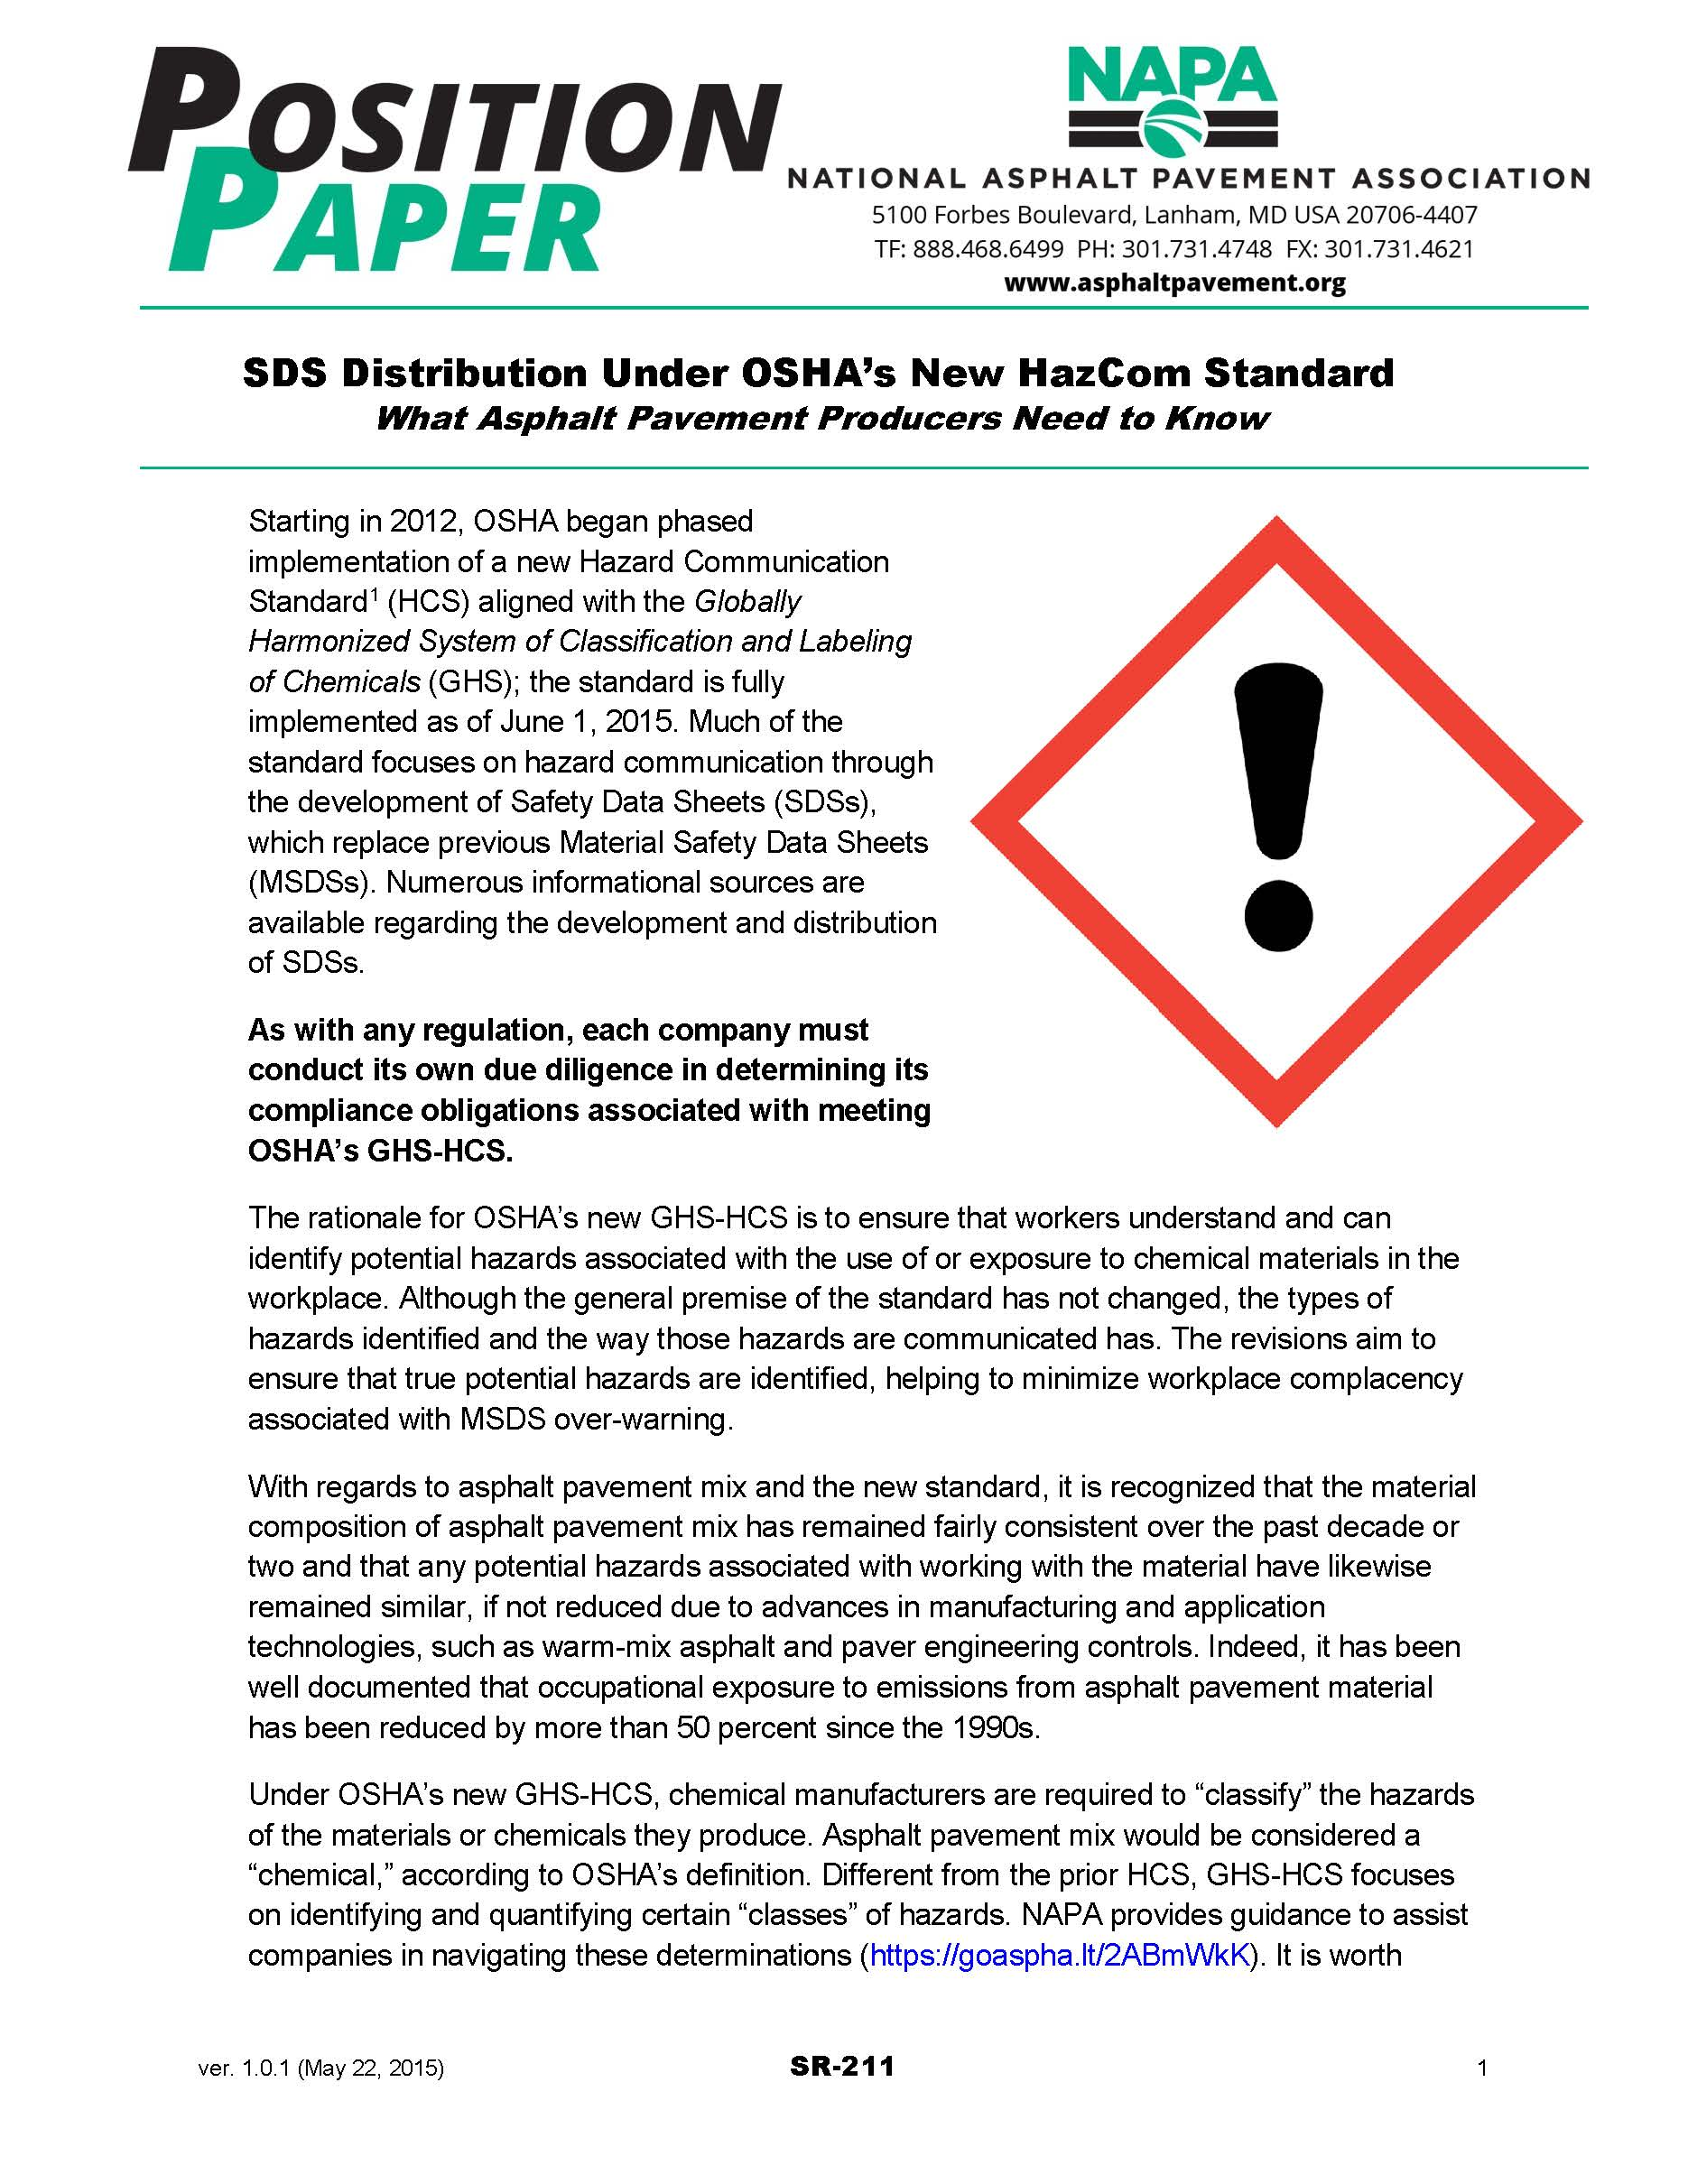 SDS Distribution Under OSHA's New HazCom Standard [PDF]